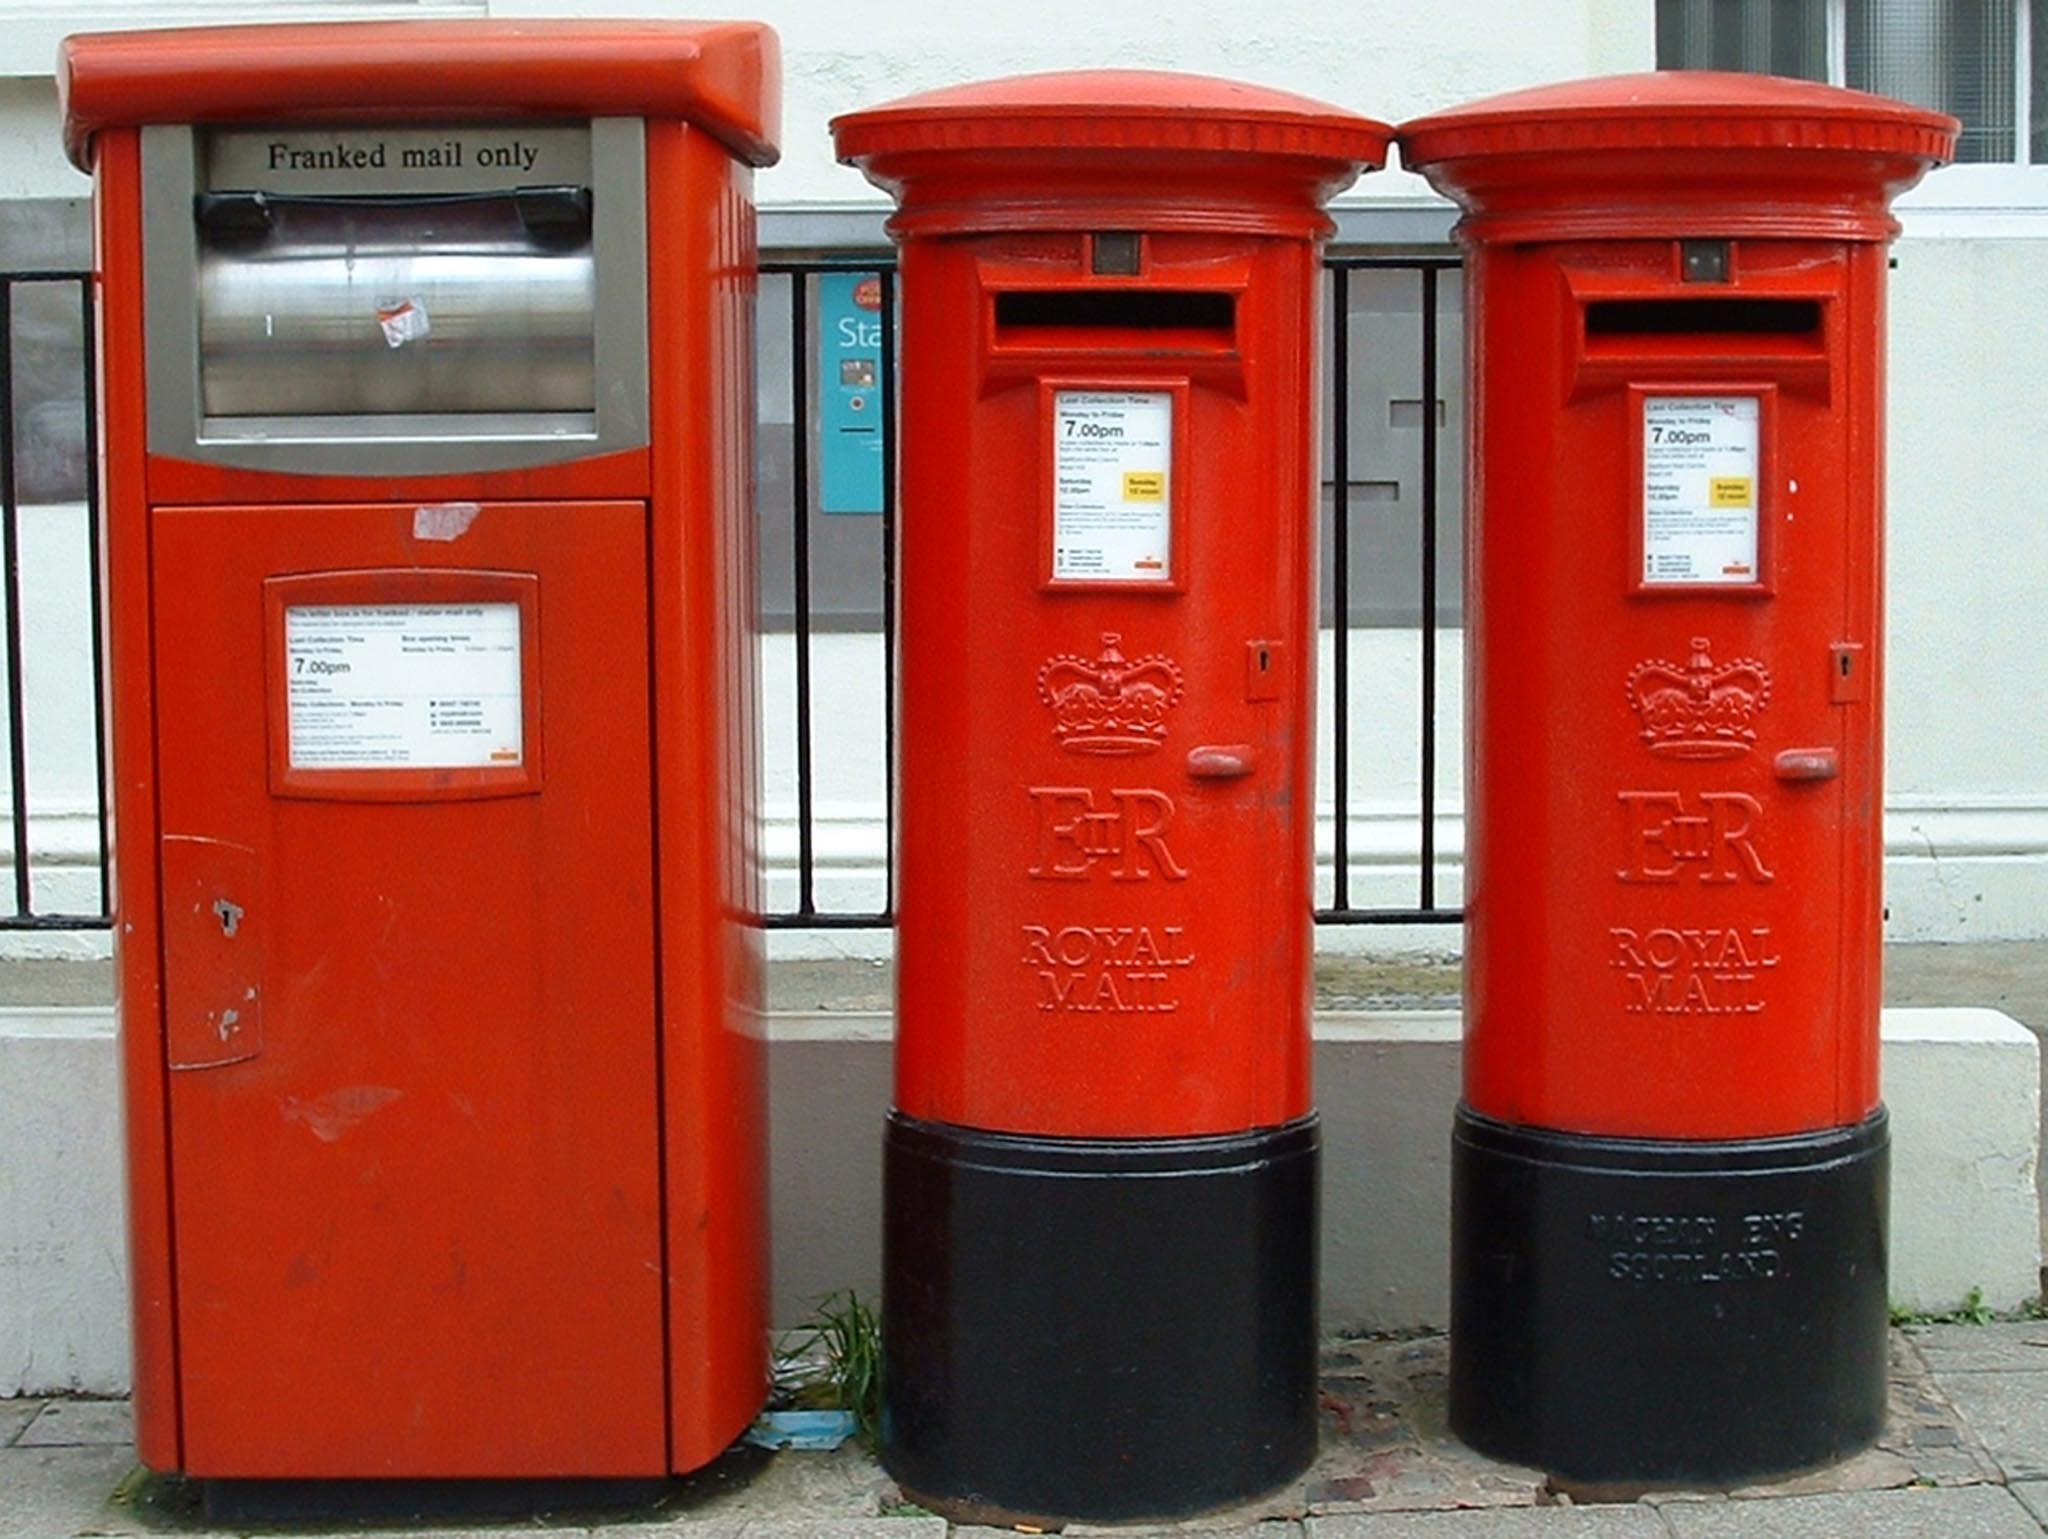 E2R meter box with a pair of E2R pillar boxes 1990s, Kent. Gerrry Cork